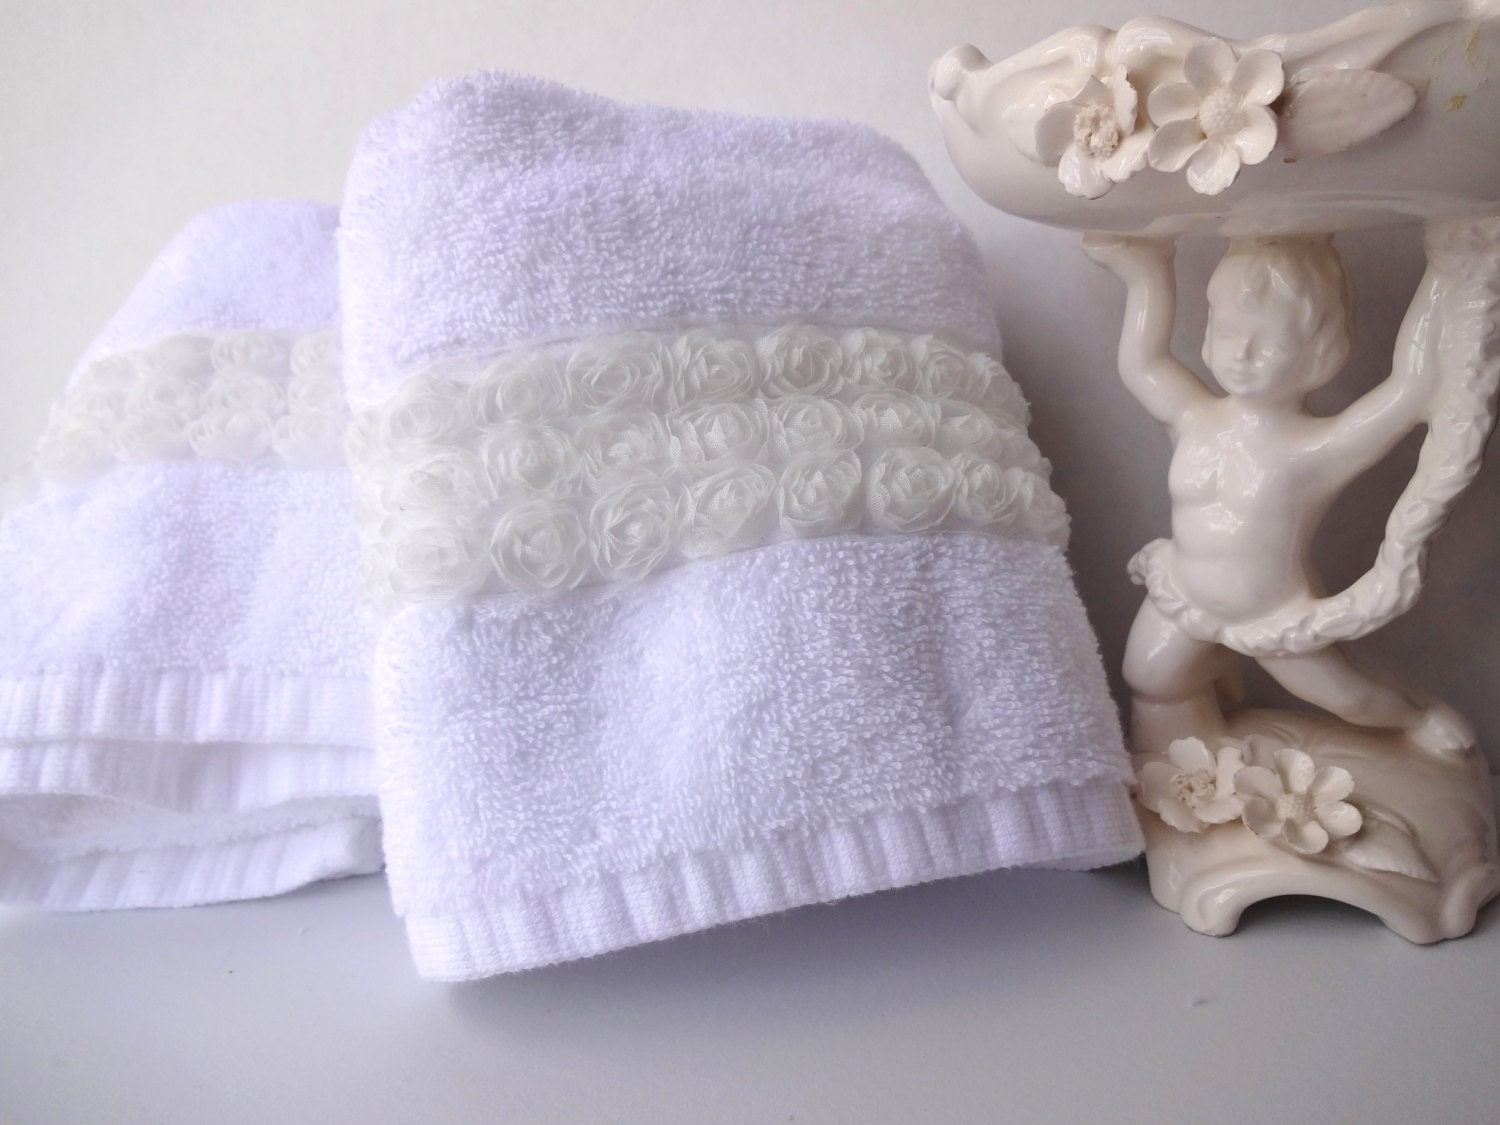 Popular items for shabby chic bathroom on Etsy